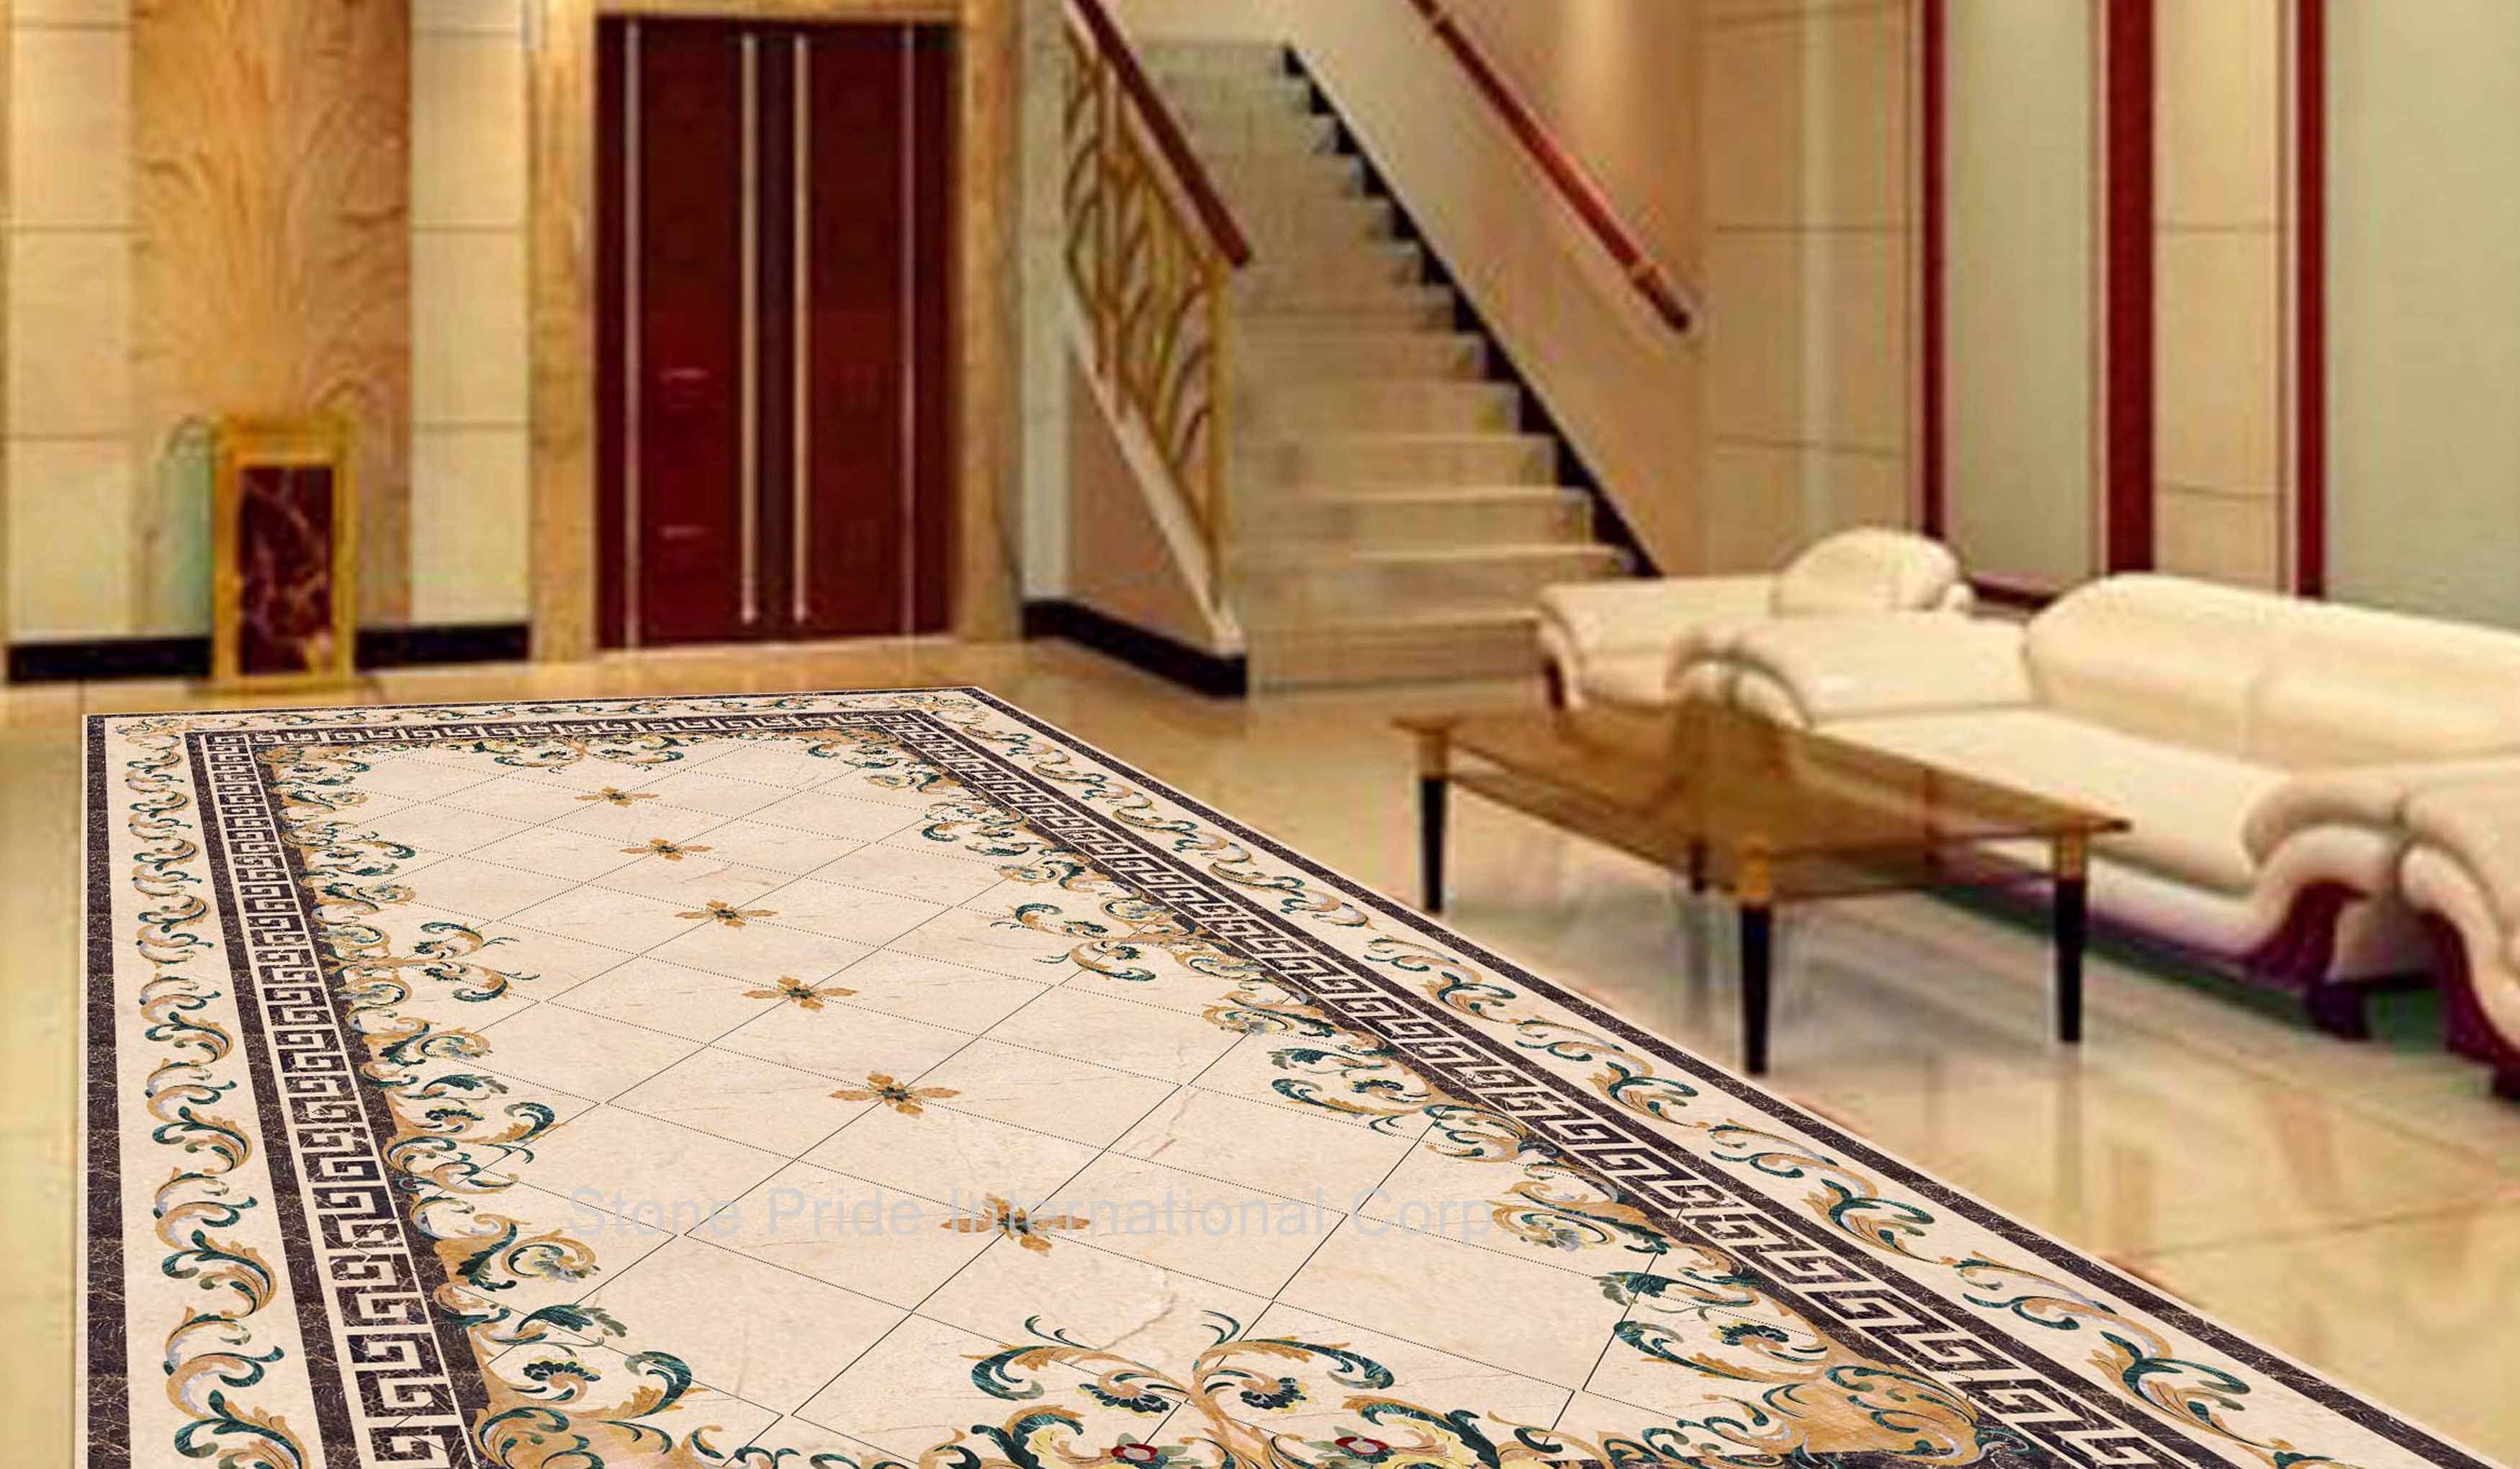 We are manufacturer exporters and suppliers in india you can marble flooring tile design ideas for rectangular living room dailygadgetfo Images